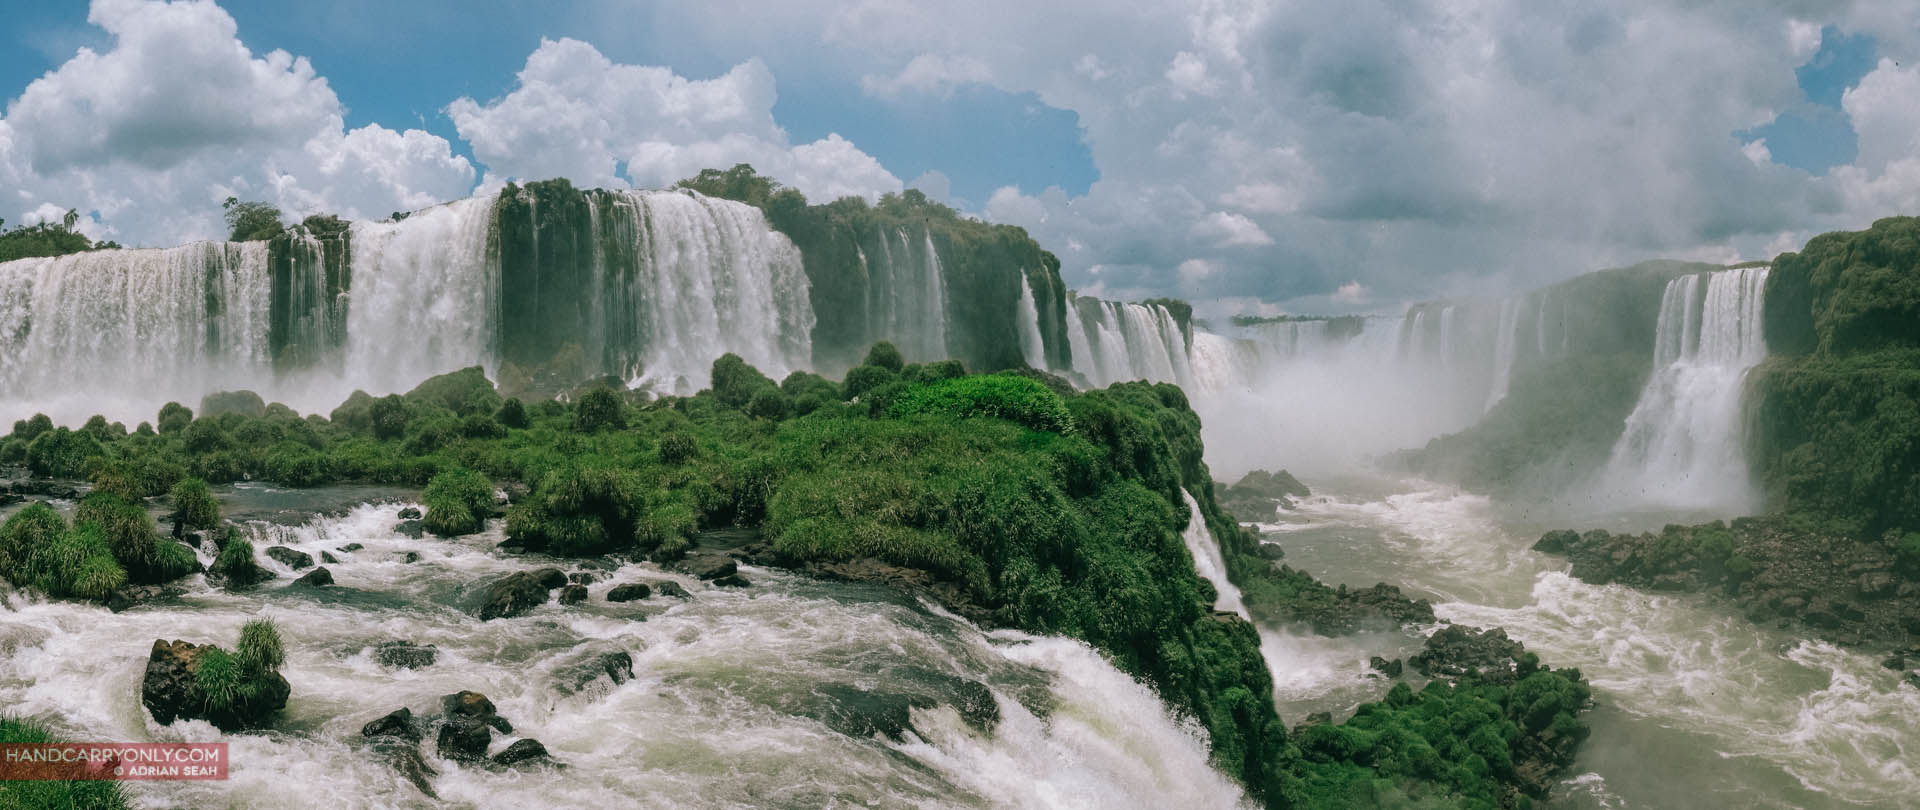 Brazilian side of Iguazu falls